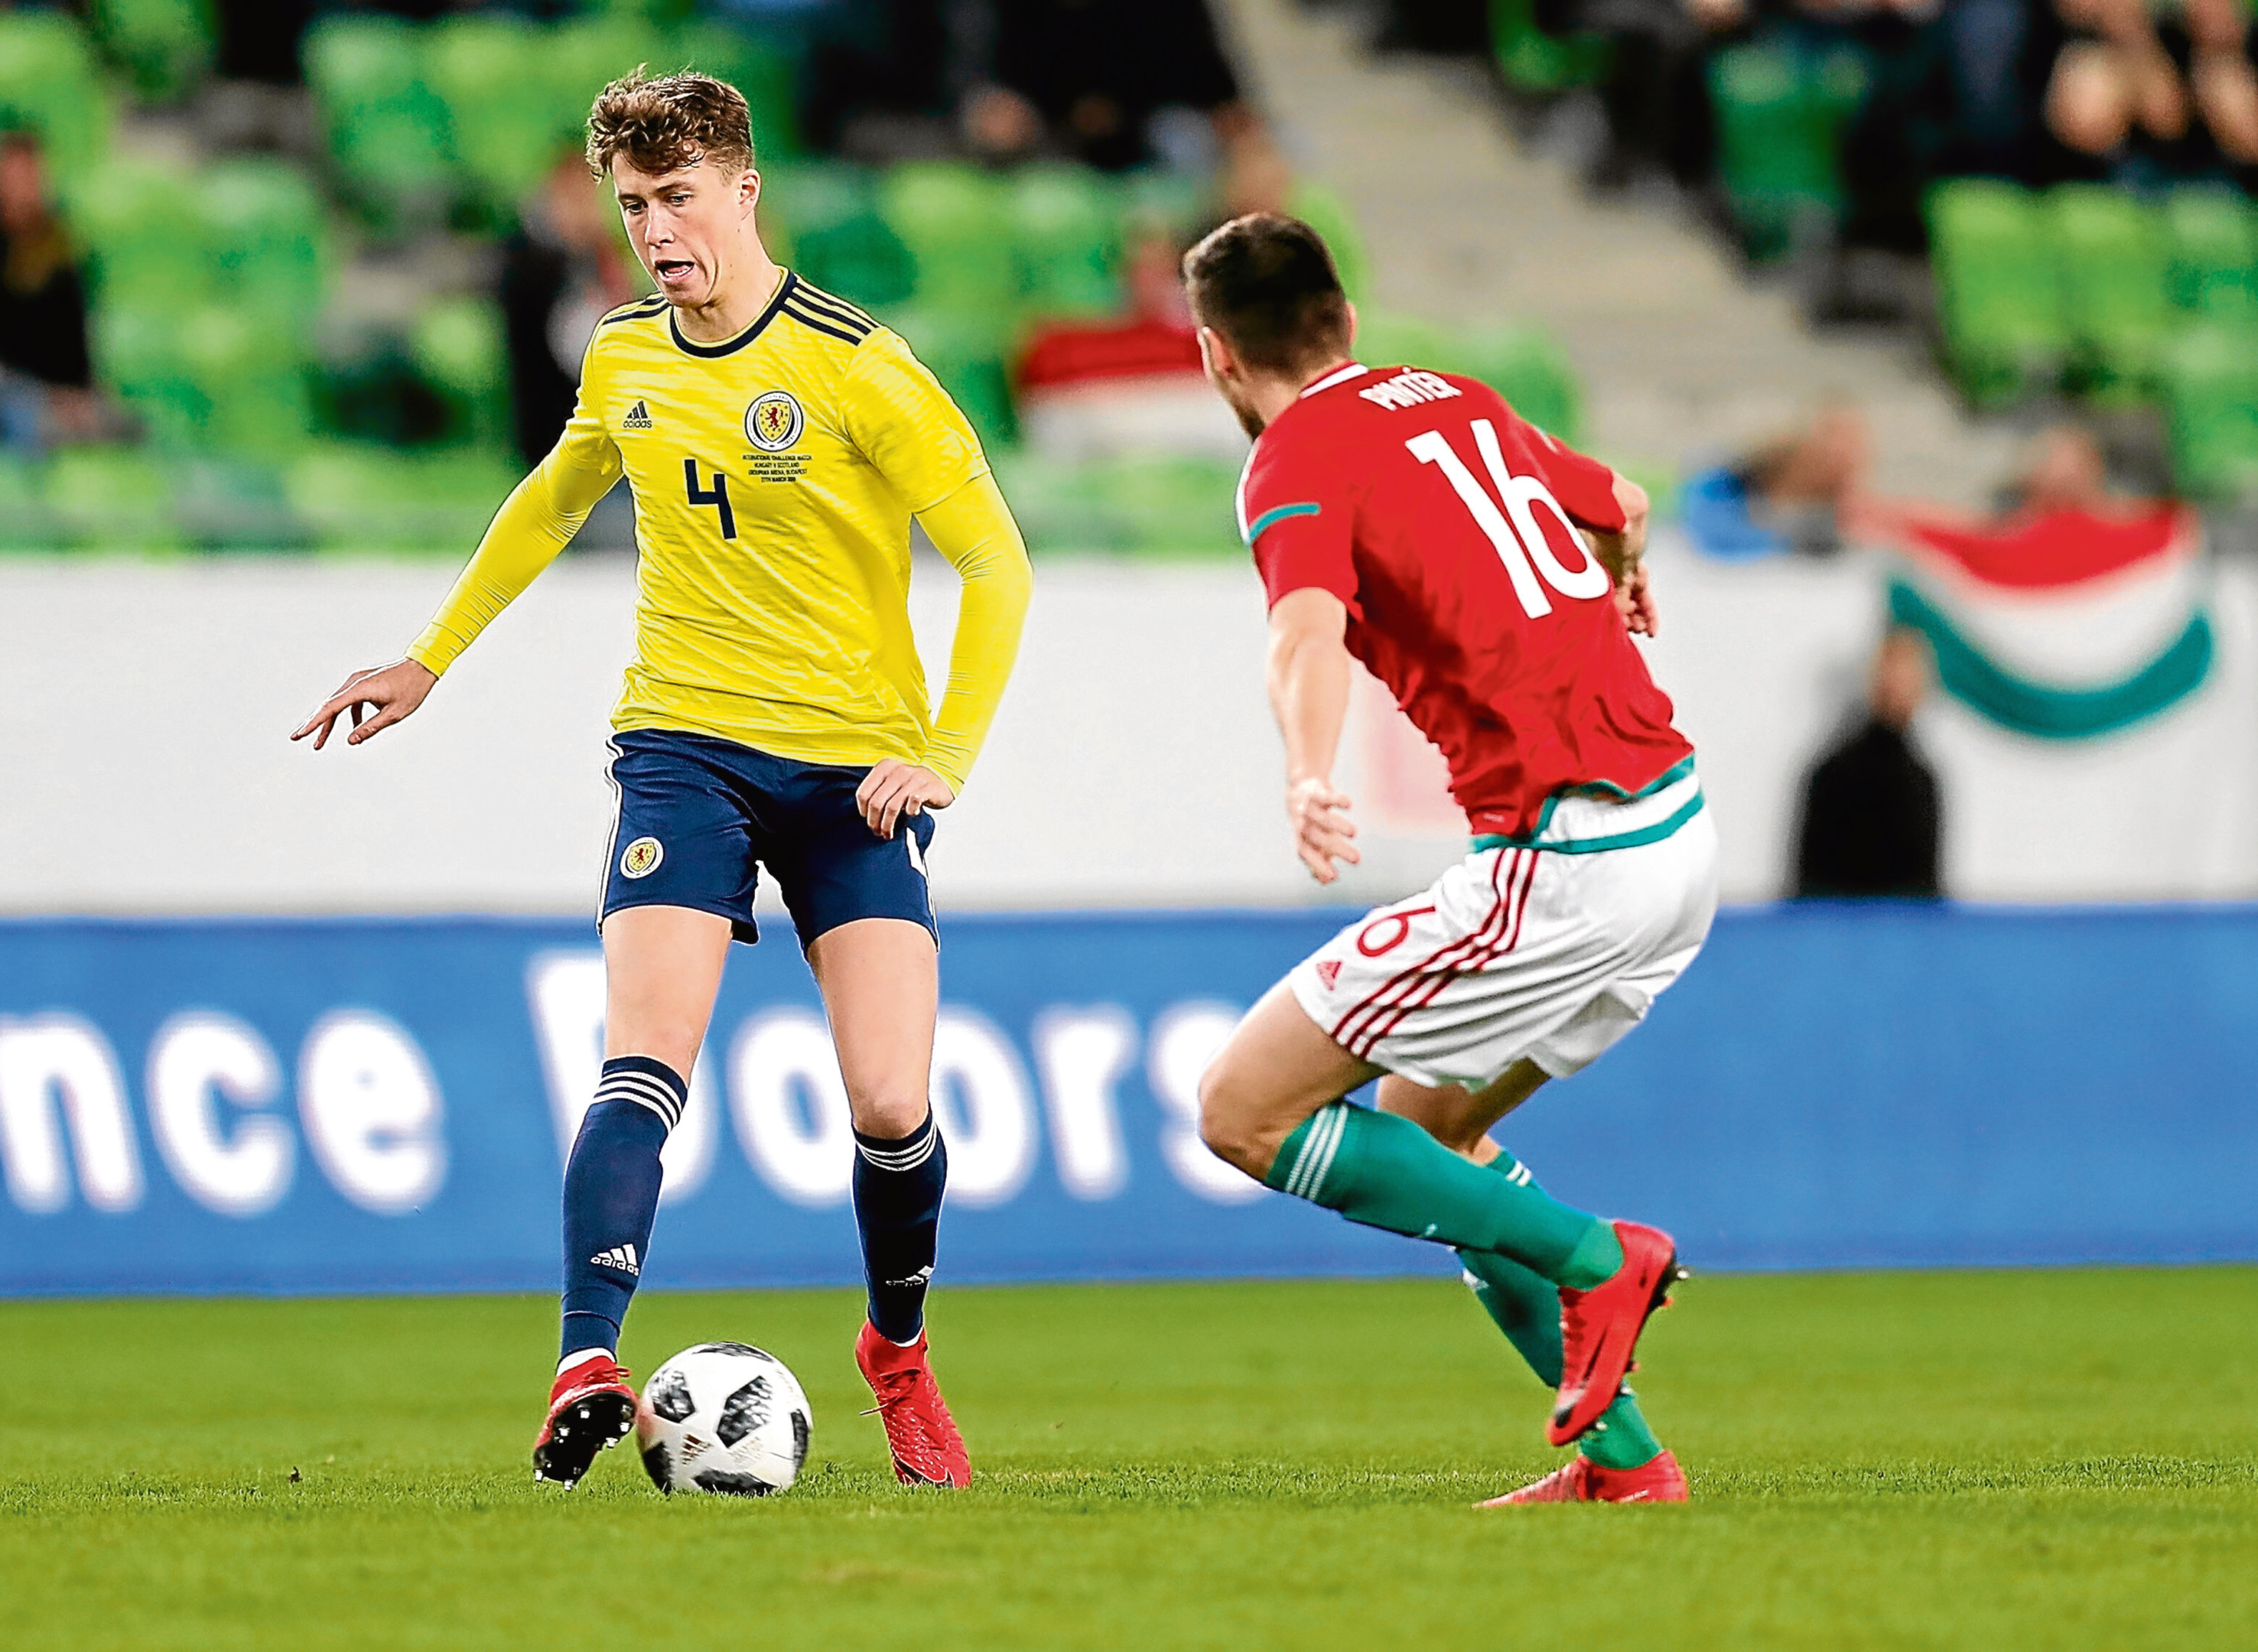 BUDAPEST, HUNGARY - MARCH 27: Adam Pinter of Hungary (r) and Jack Hendry of Scotland (l) in action during the International Friendly match between Hungary and Scotland at Groupama Arena on March 27, 2018 in Budapest, Hungary. (Photo by Laszlo Szirtesi/Getty Images)